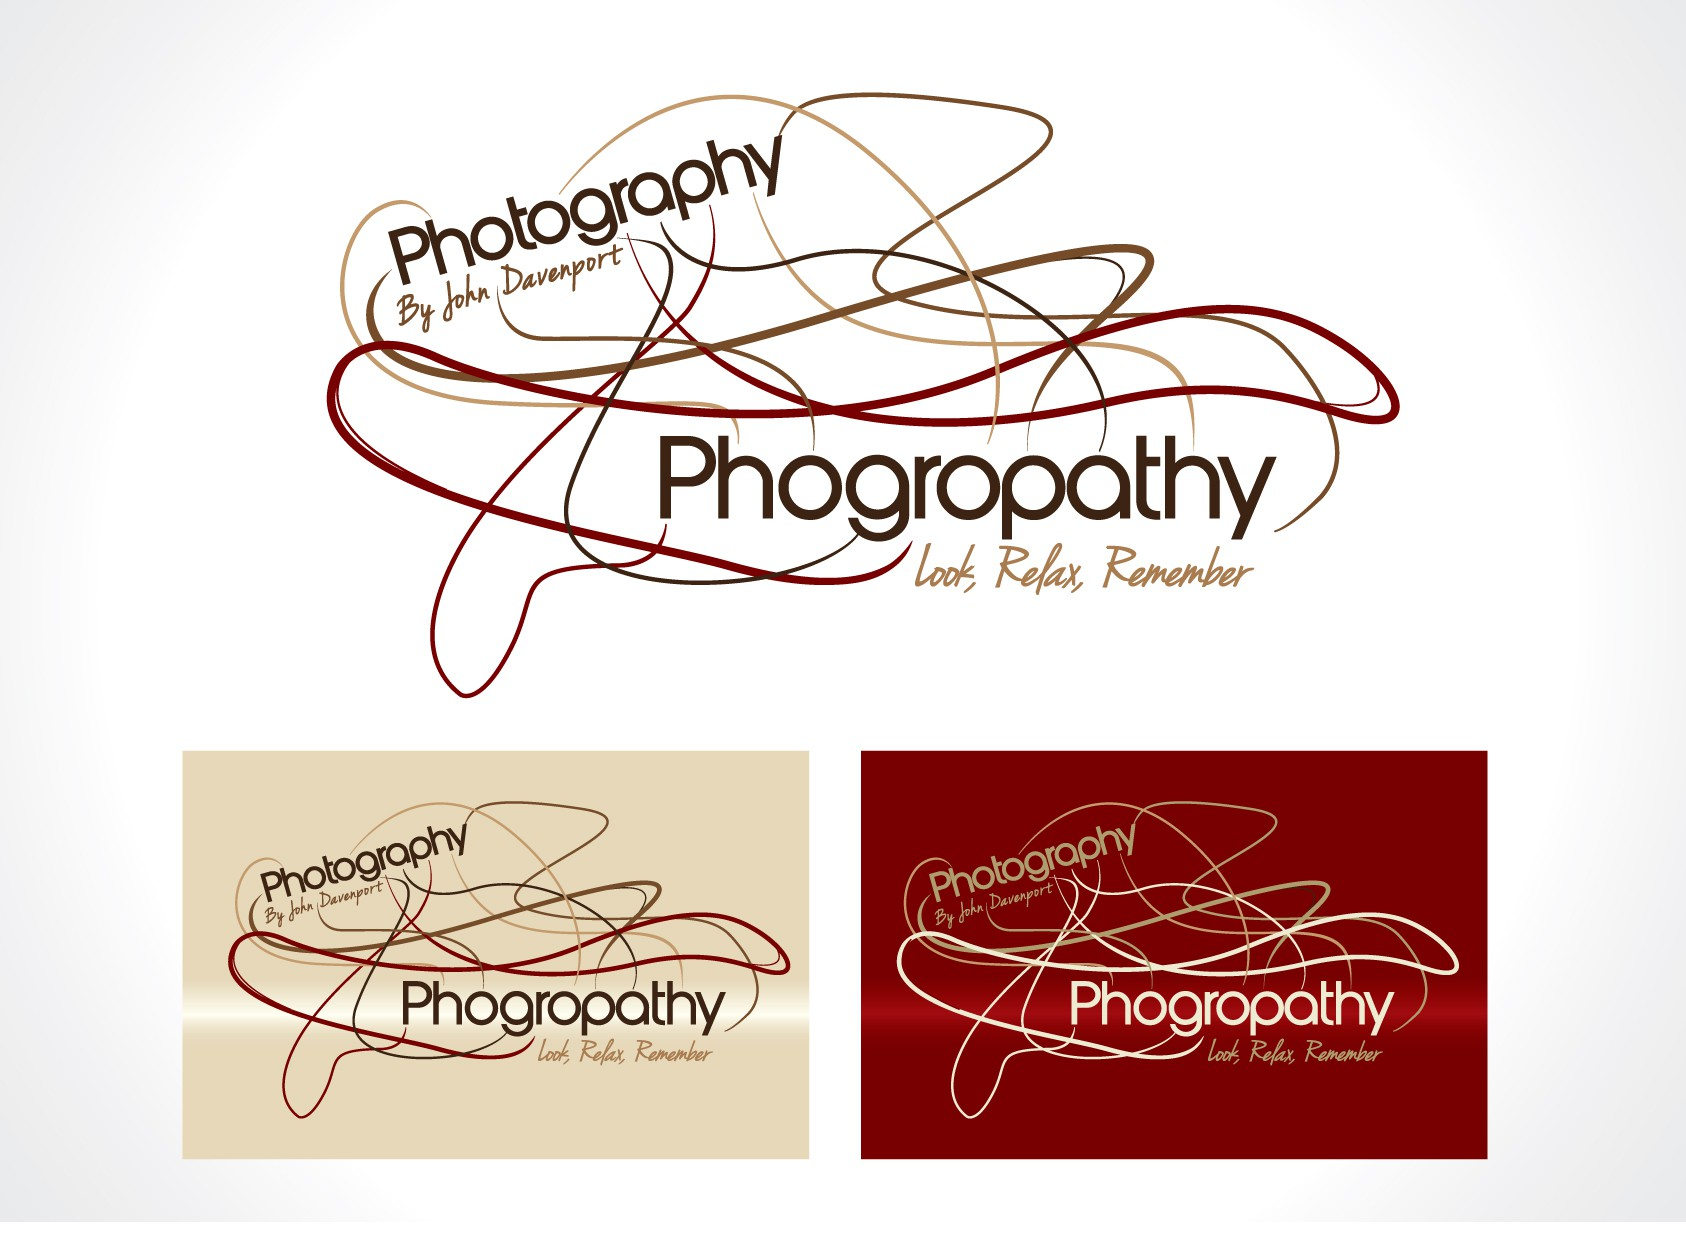 Photography Blog Needs Logo Based on Concept Provided!